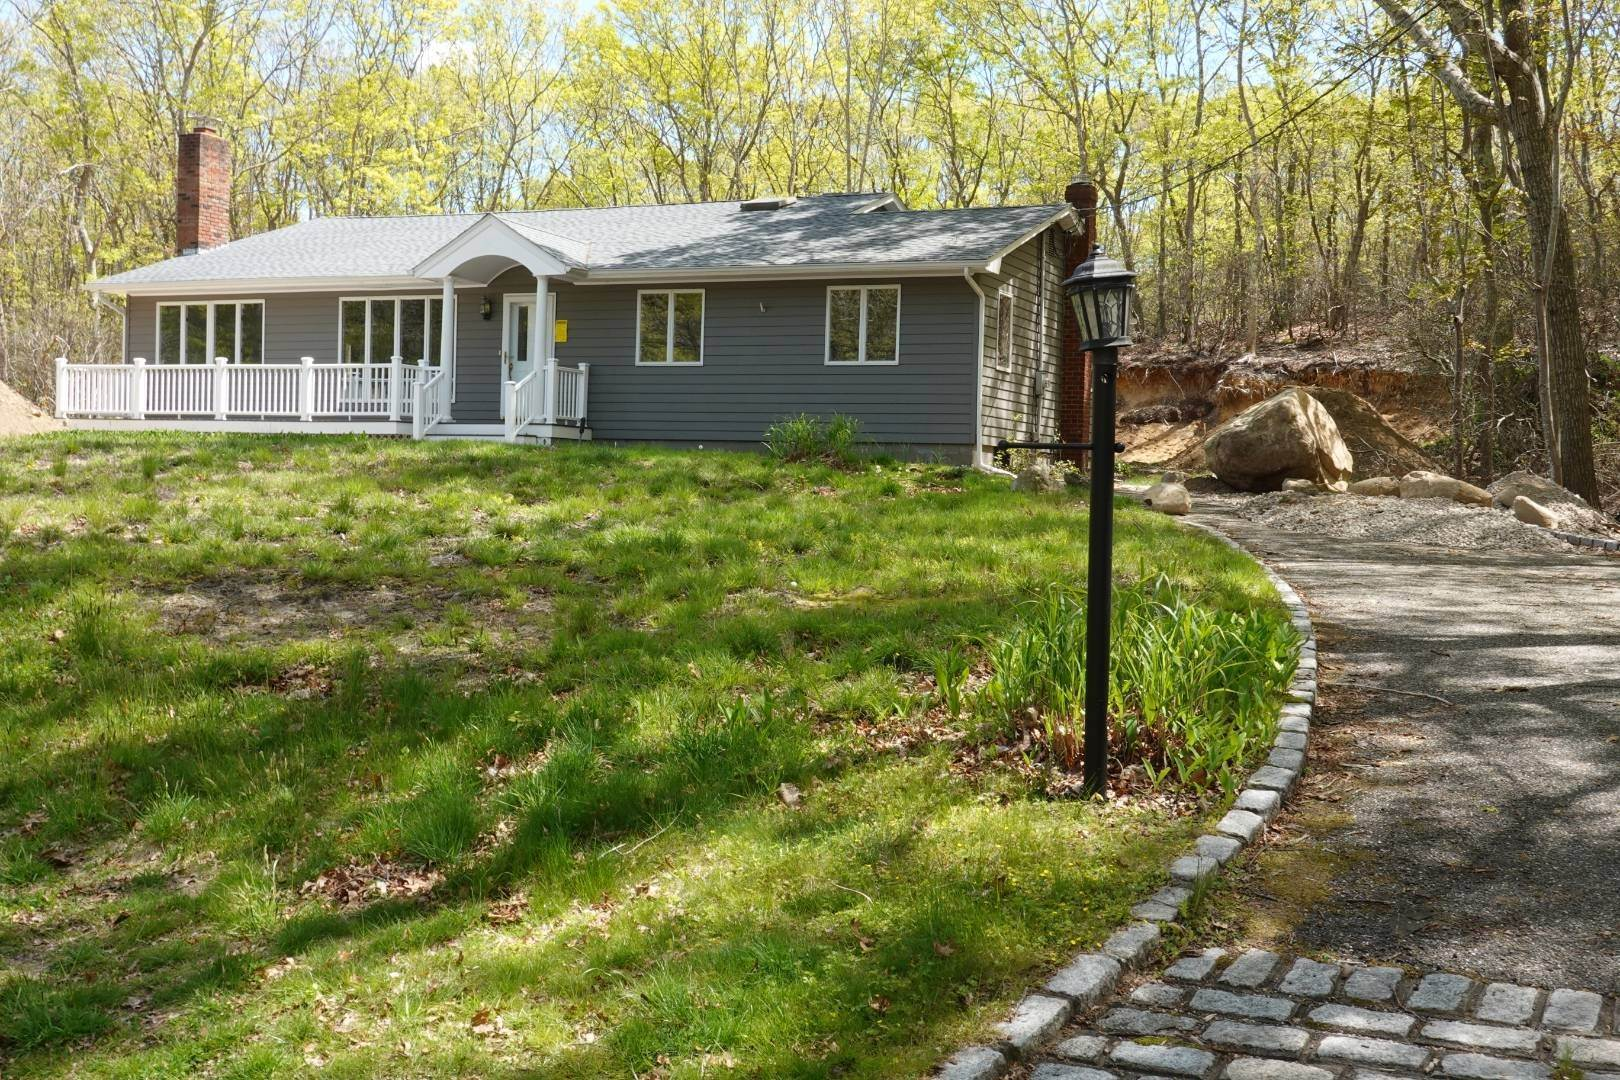 Single Family Home for Sale at Renovate The Existing House Or Build Building Plans 32 Laurel Trail, Sag Harbor, NY 11963